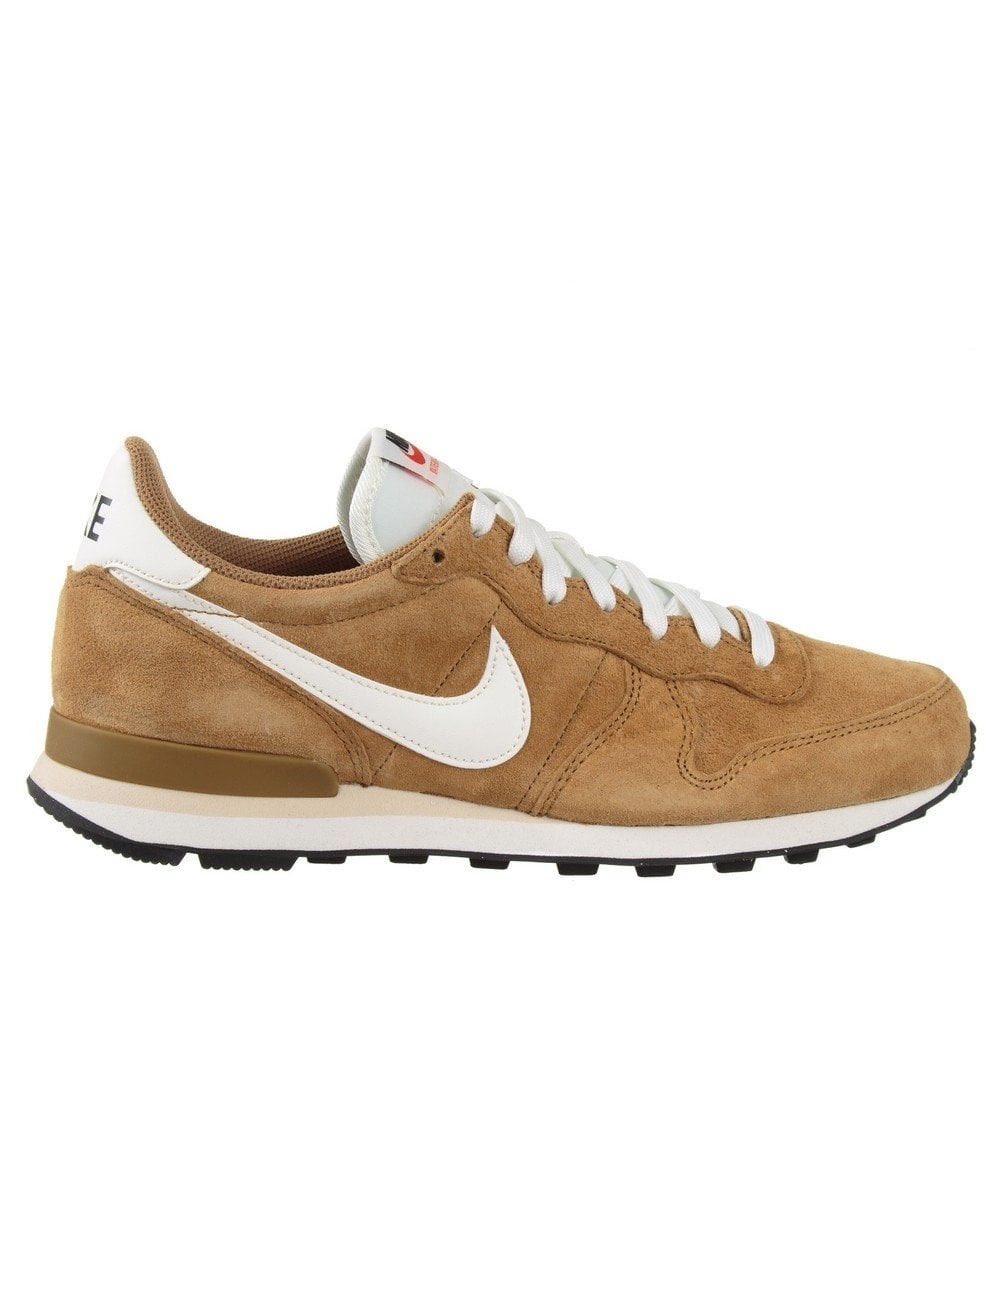 info for 851e4 00ff9 Nike Internationalist Shoes - Golden TanSail